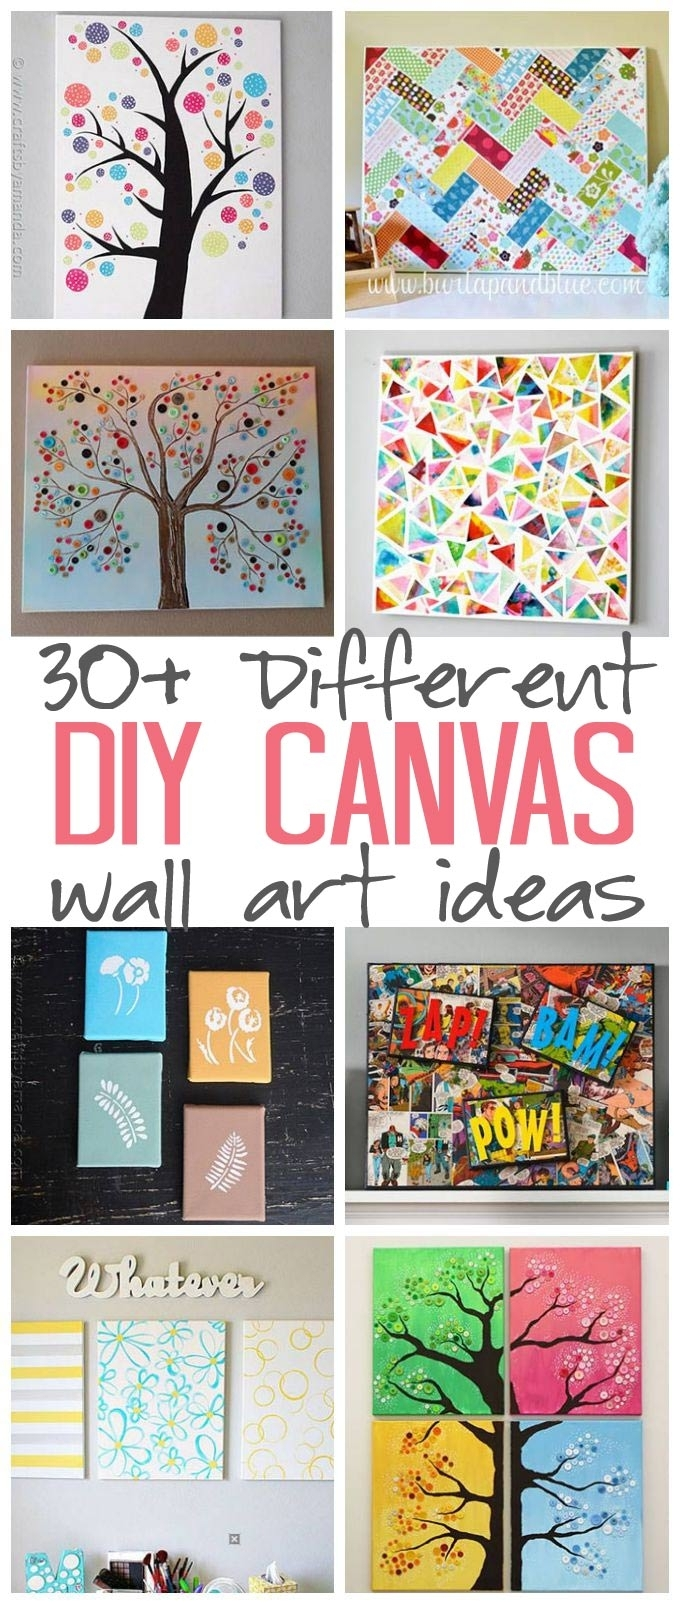 Canvas Wall Art Ideas: 30+ Canvas Tutorials Intended For Most Current Diy Canvas Wall Art (View 1 of 15)